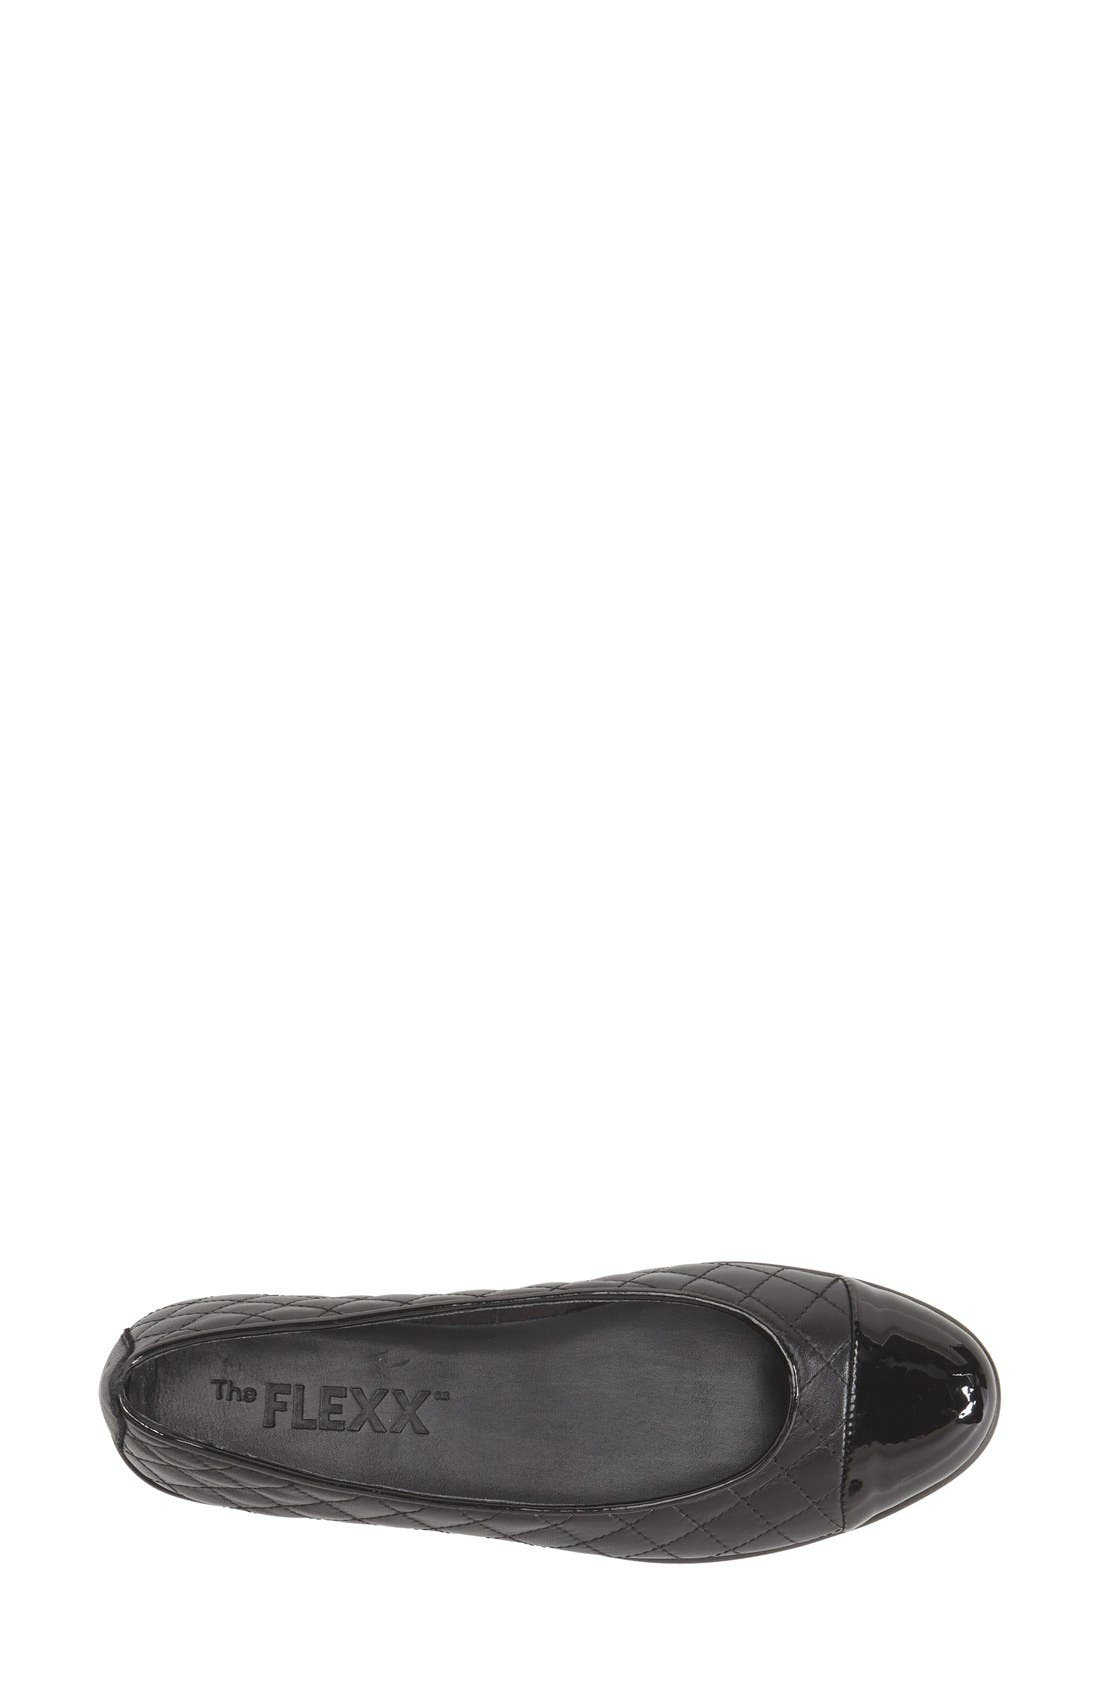 Alternate Image 3  - The FLEXX 'Rise a Smile' Quilted Leather Flat (Women)